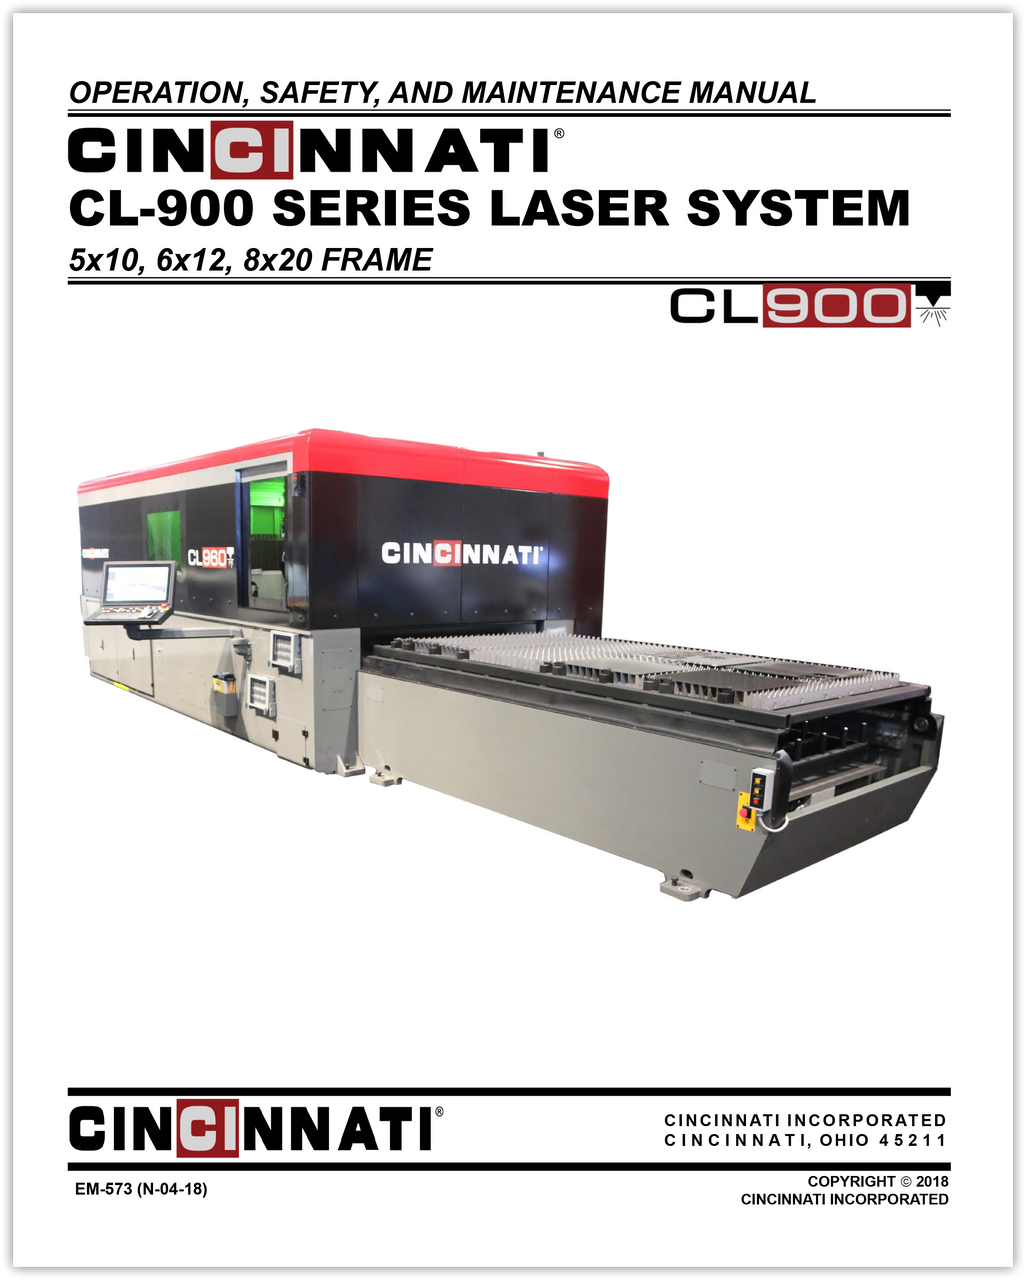 EM-573 (N-04-18) CL-900 Series Laser System Operation Safety and Maintenance Manual